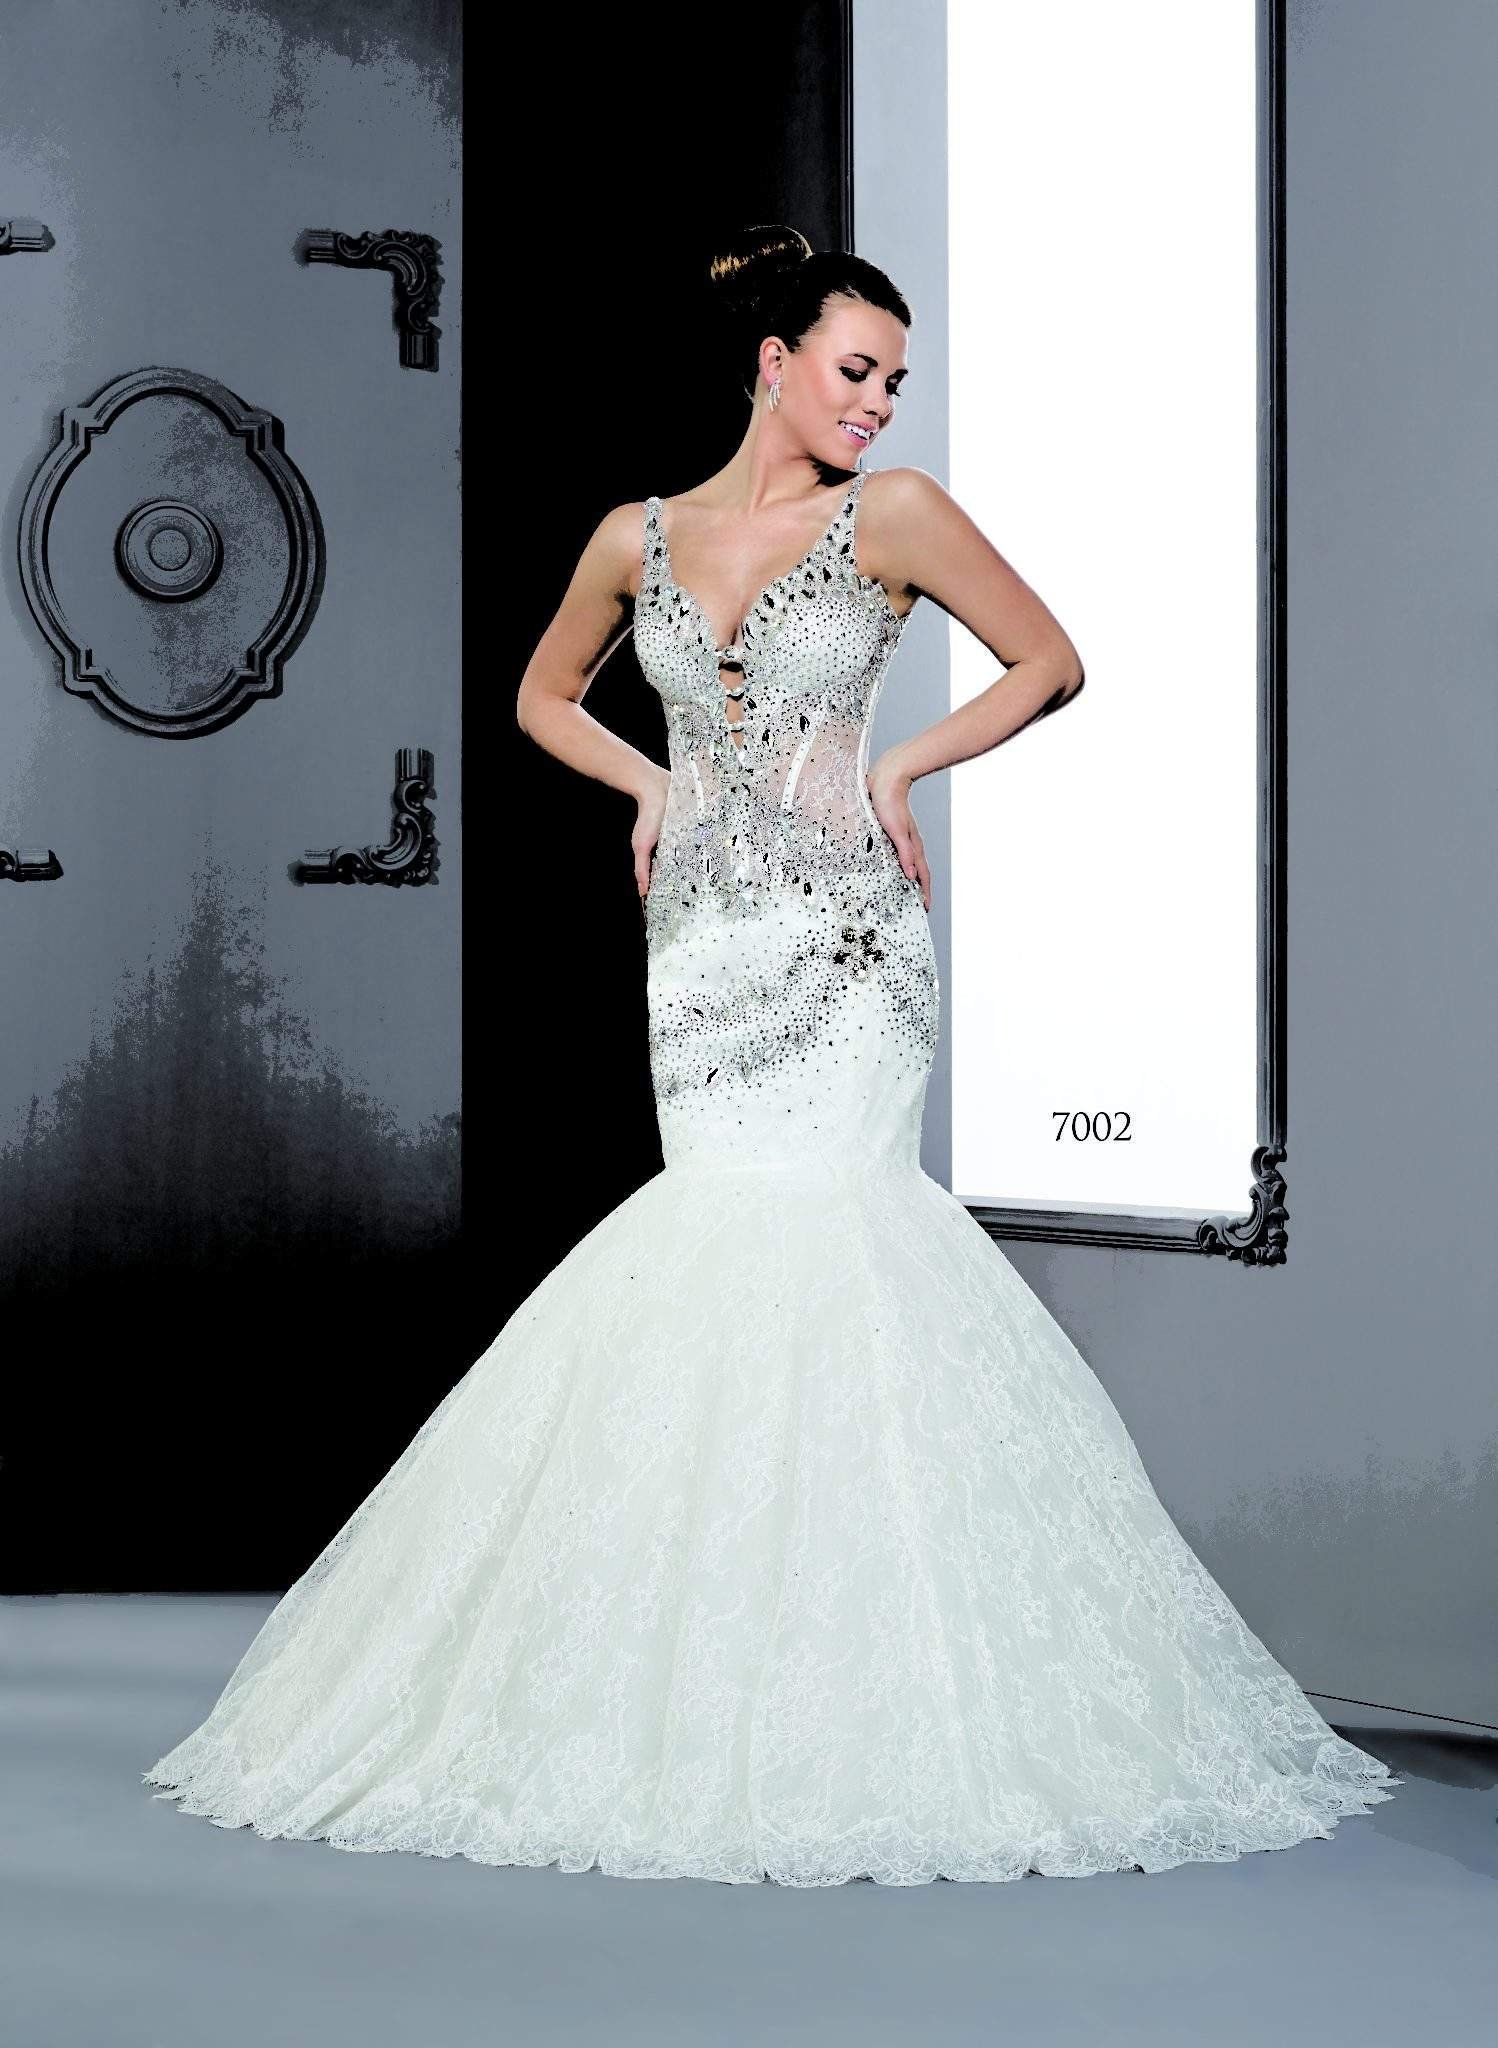 Heavily beaded wedding dresses with swarovski crystals by for Beaded wedding dress designers